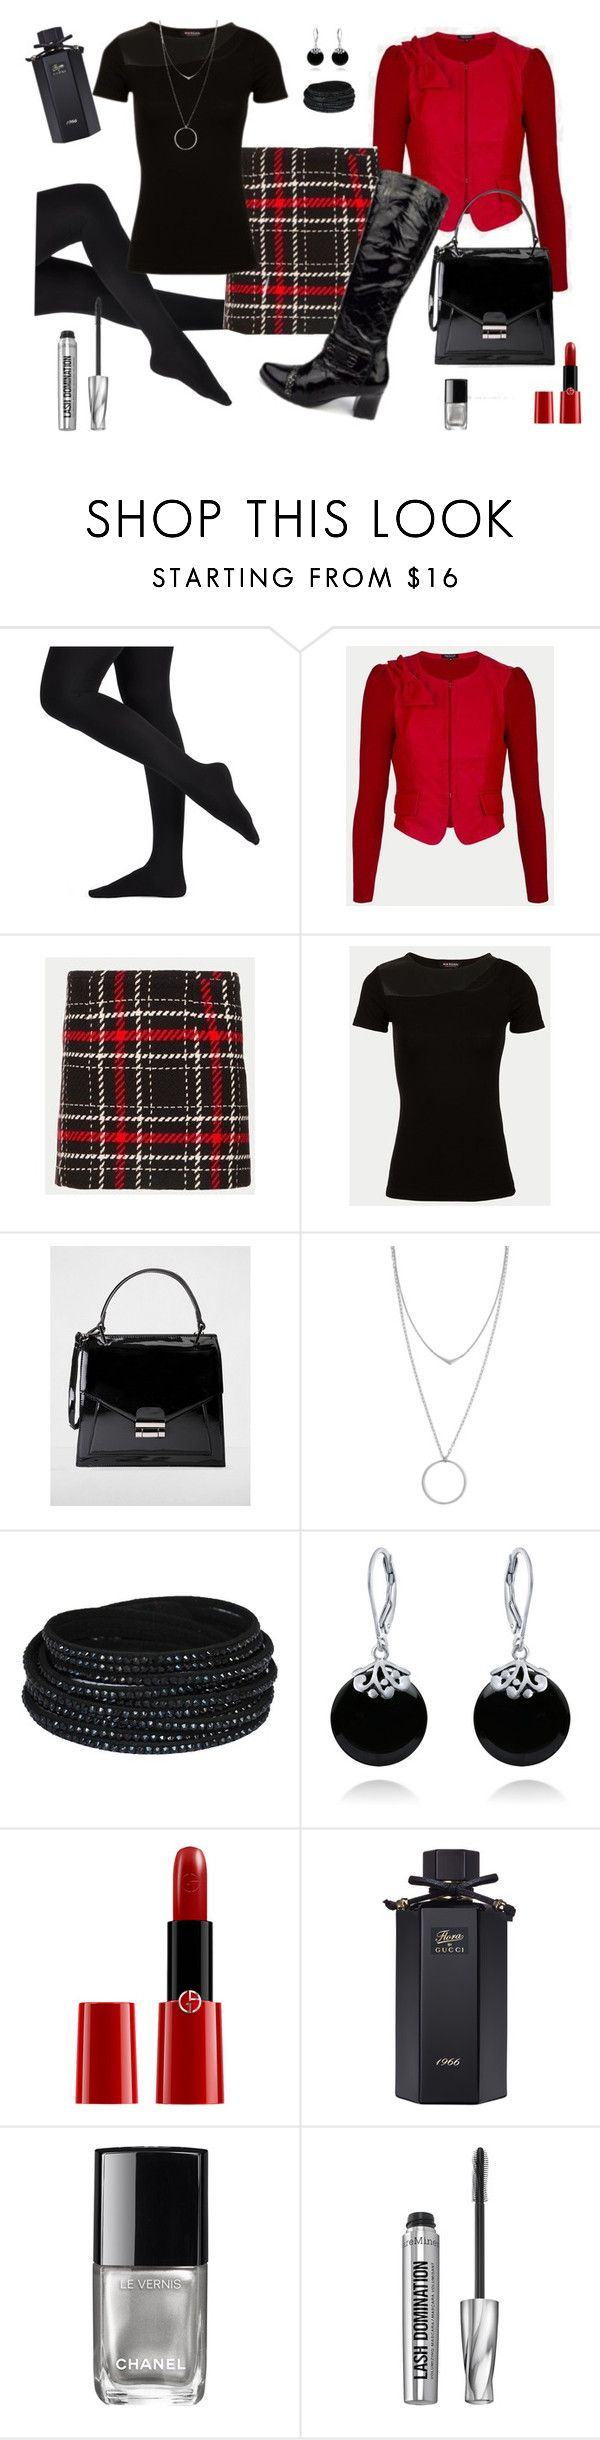 """En bottes noires vernies"" by delphine-delphe on Polyvore featuring mode, Botkier, Bling Jewelry, Giorgio Armani, Gucci, Chanel et Bare Escentuals"